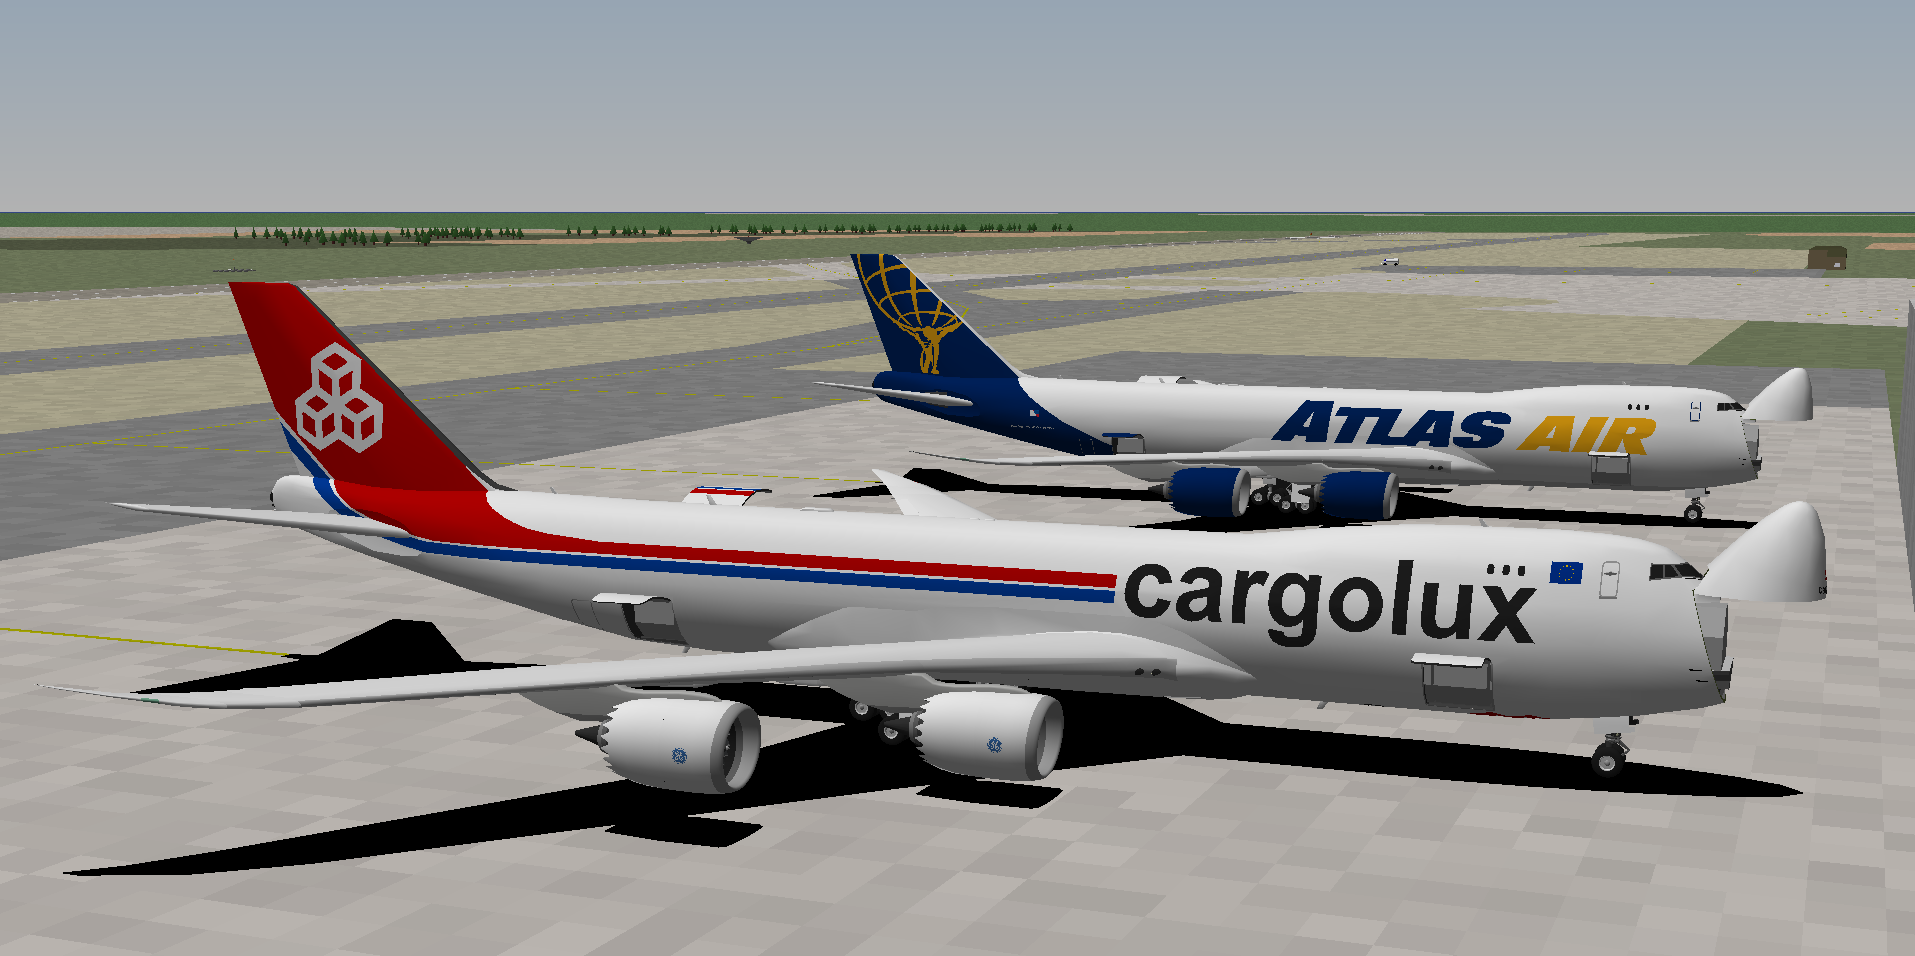 748s_at_Viracopos.png